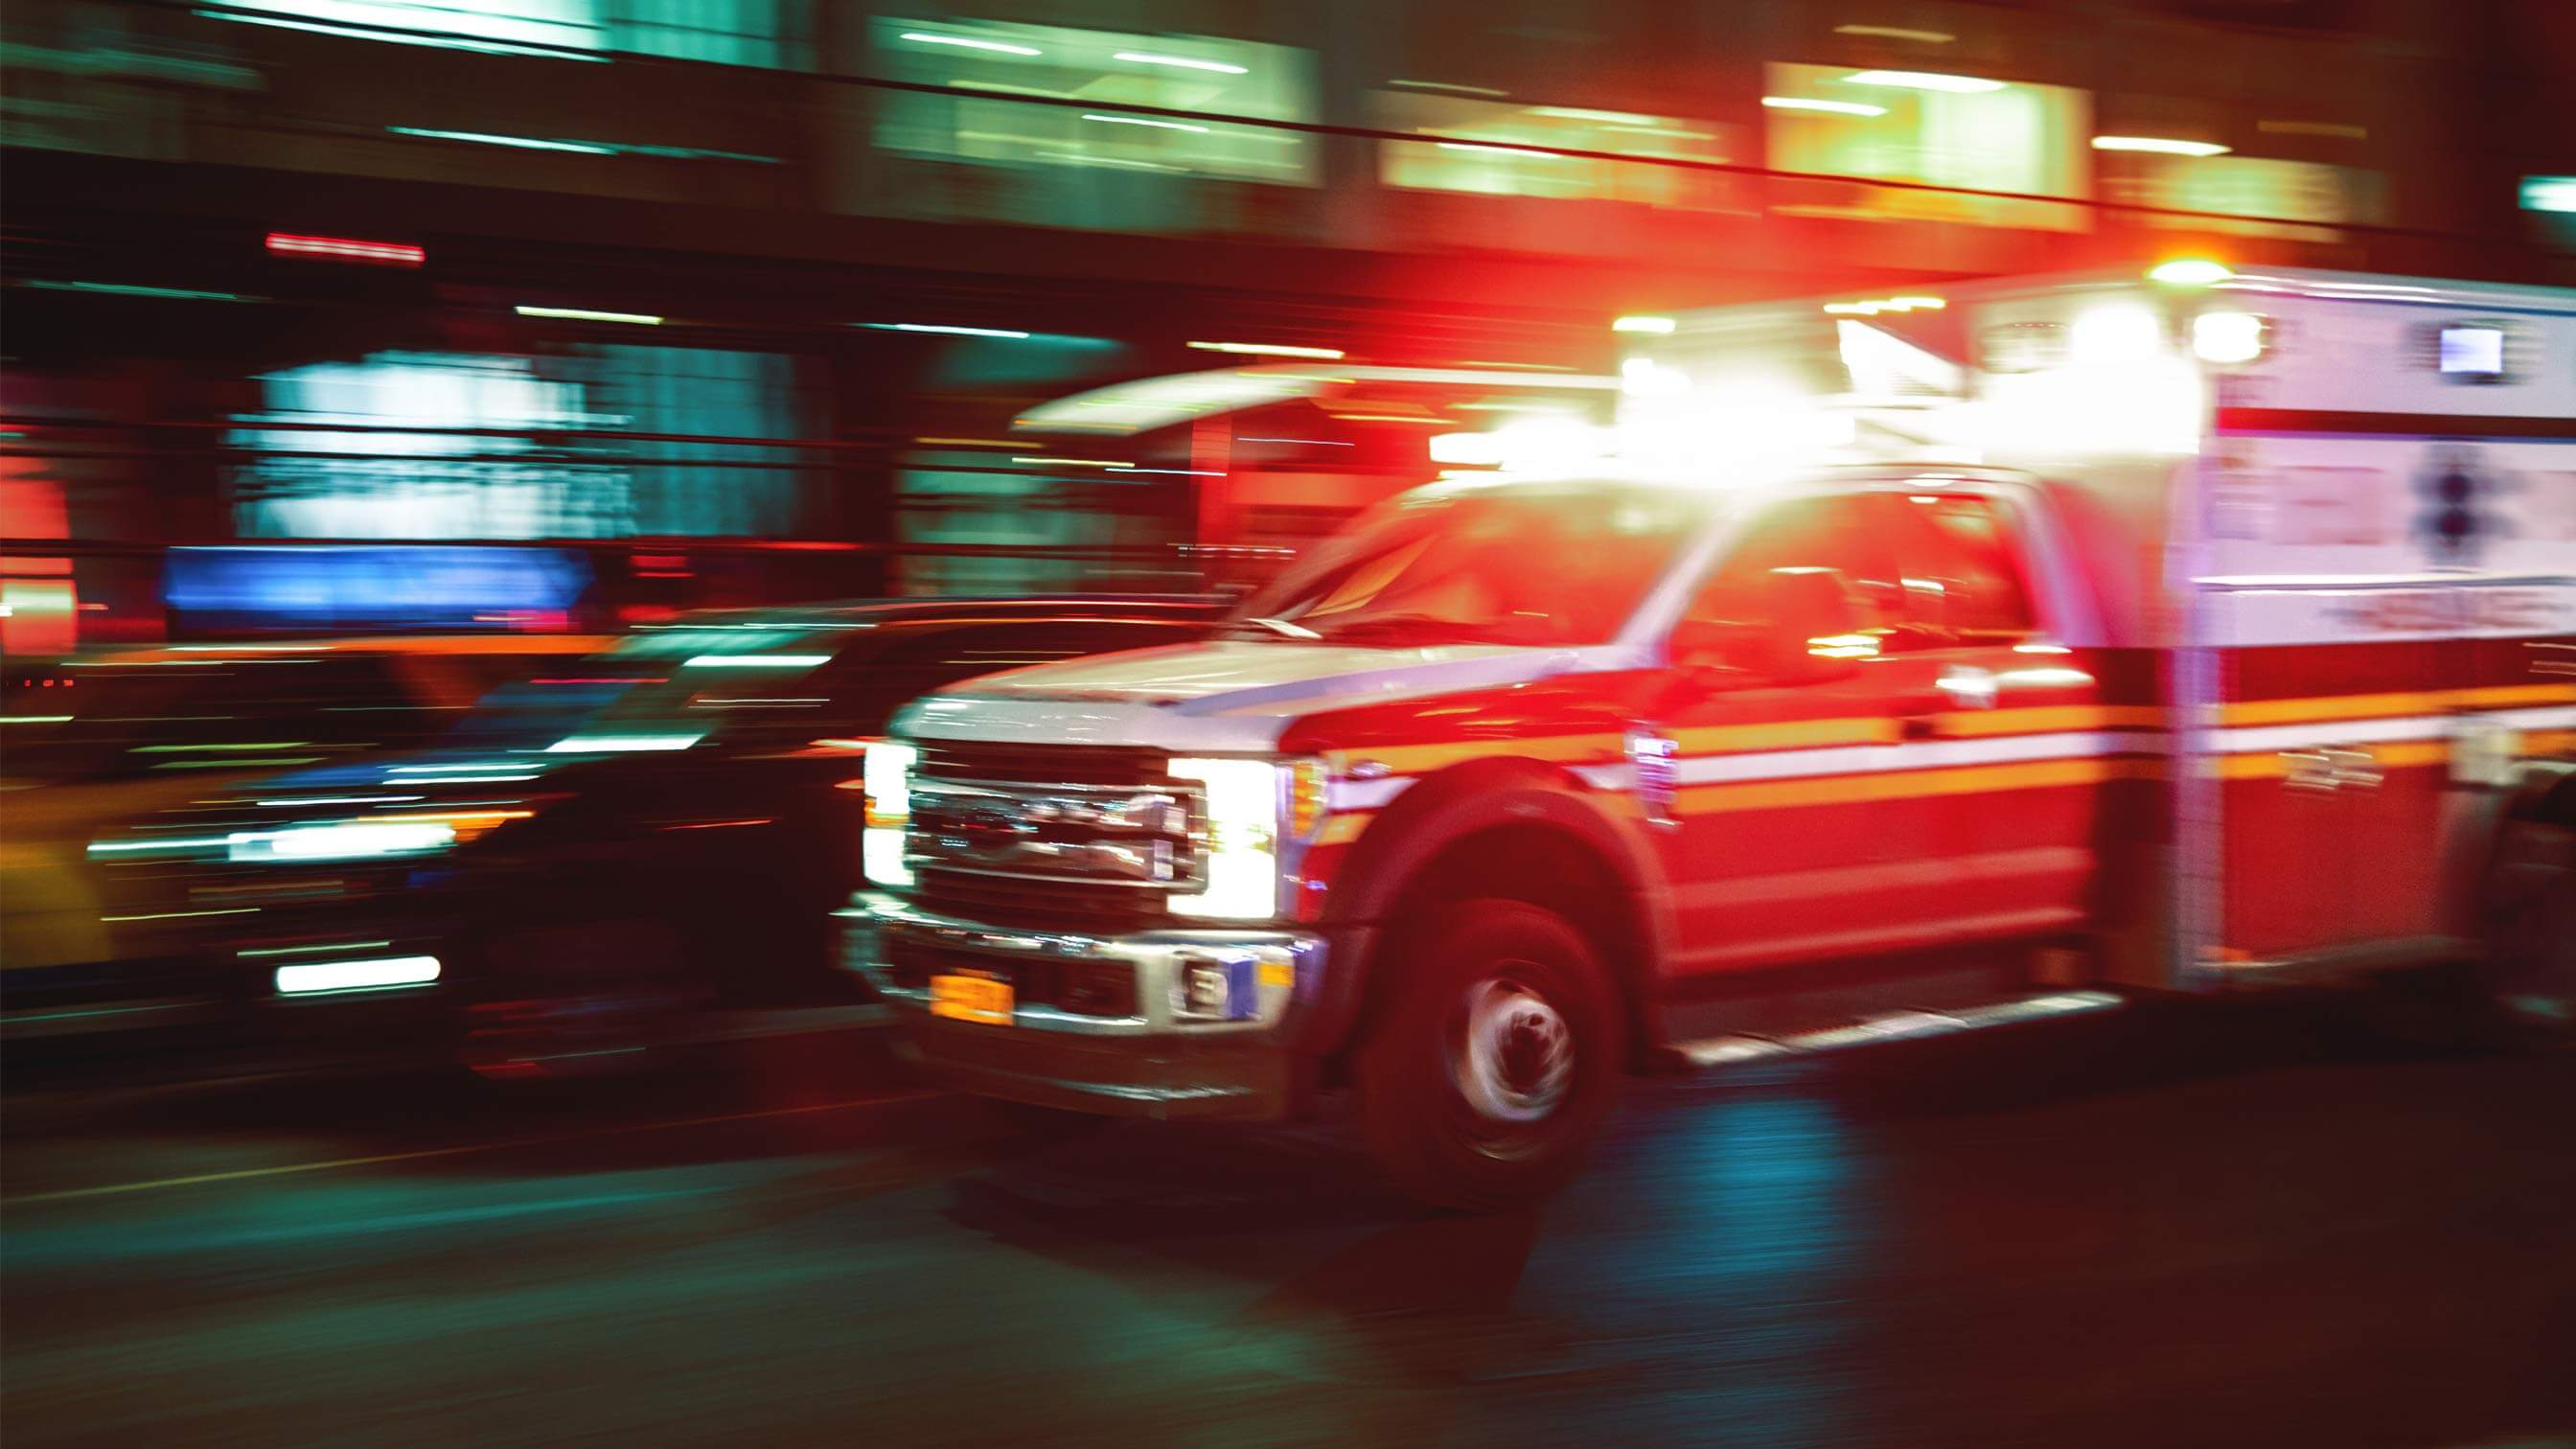 American ambulance streaking across view with lights shining